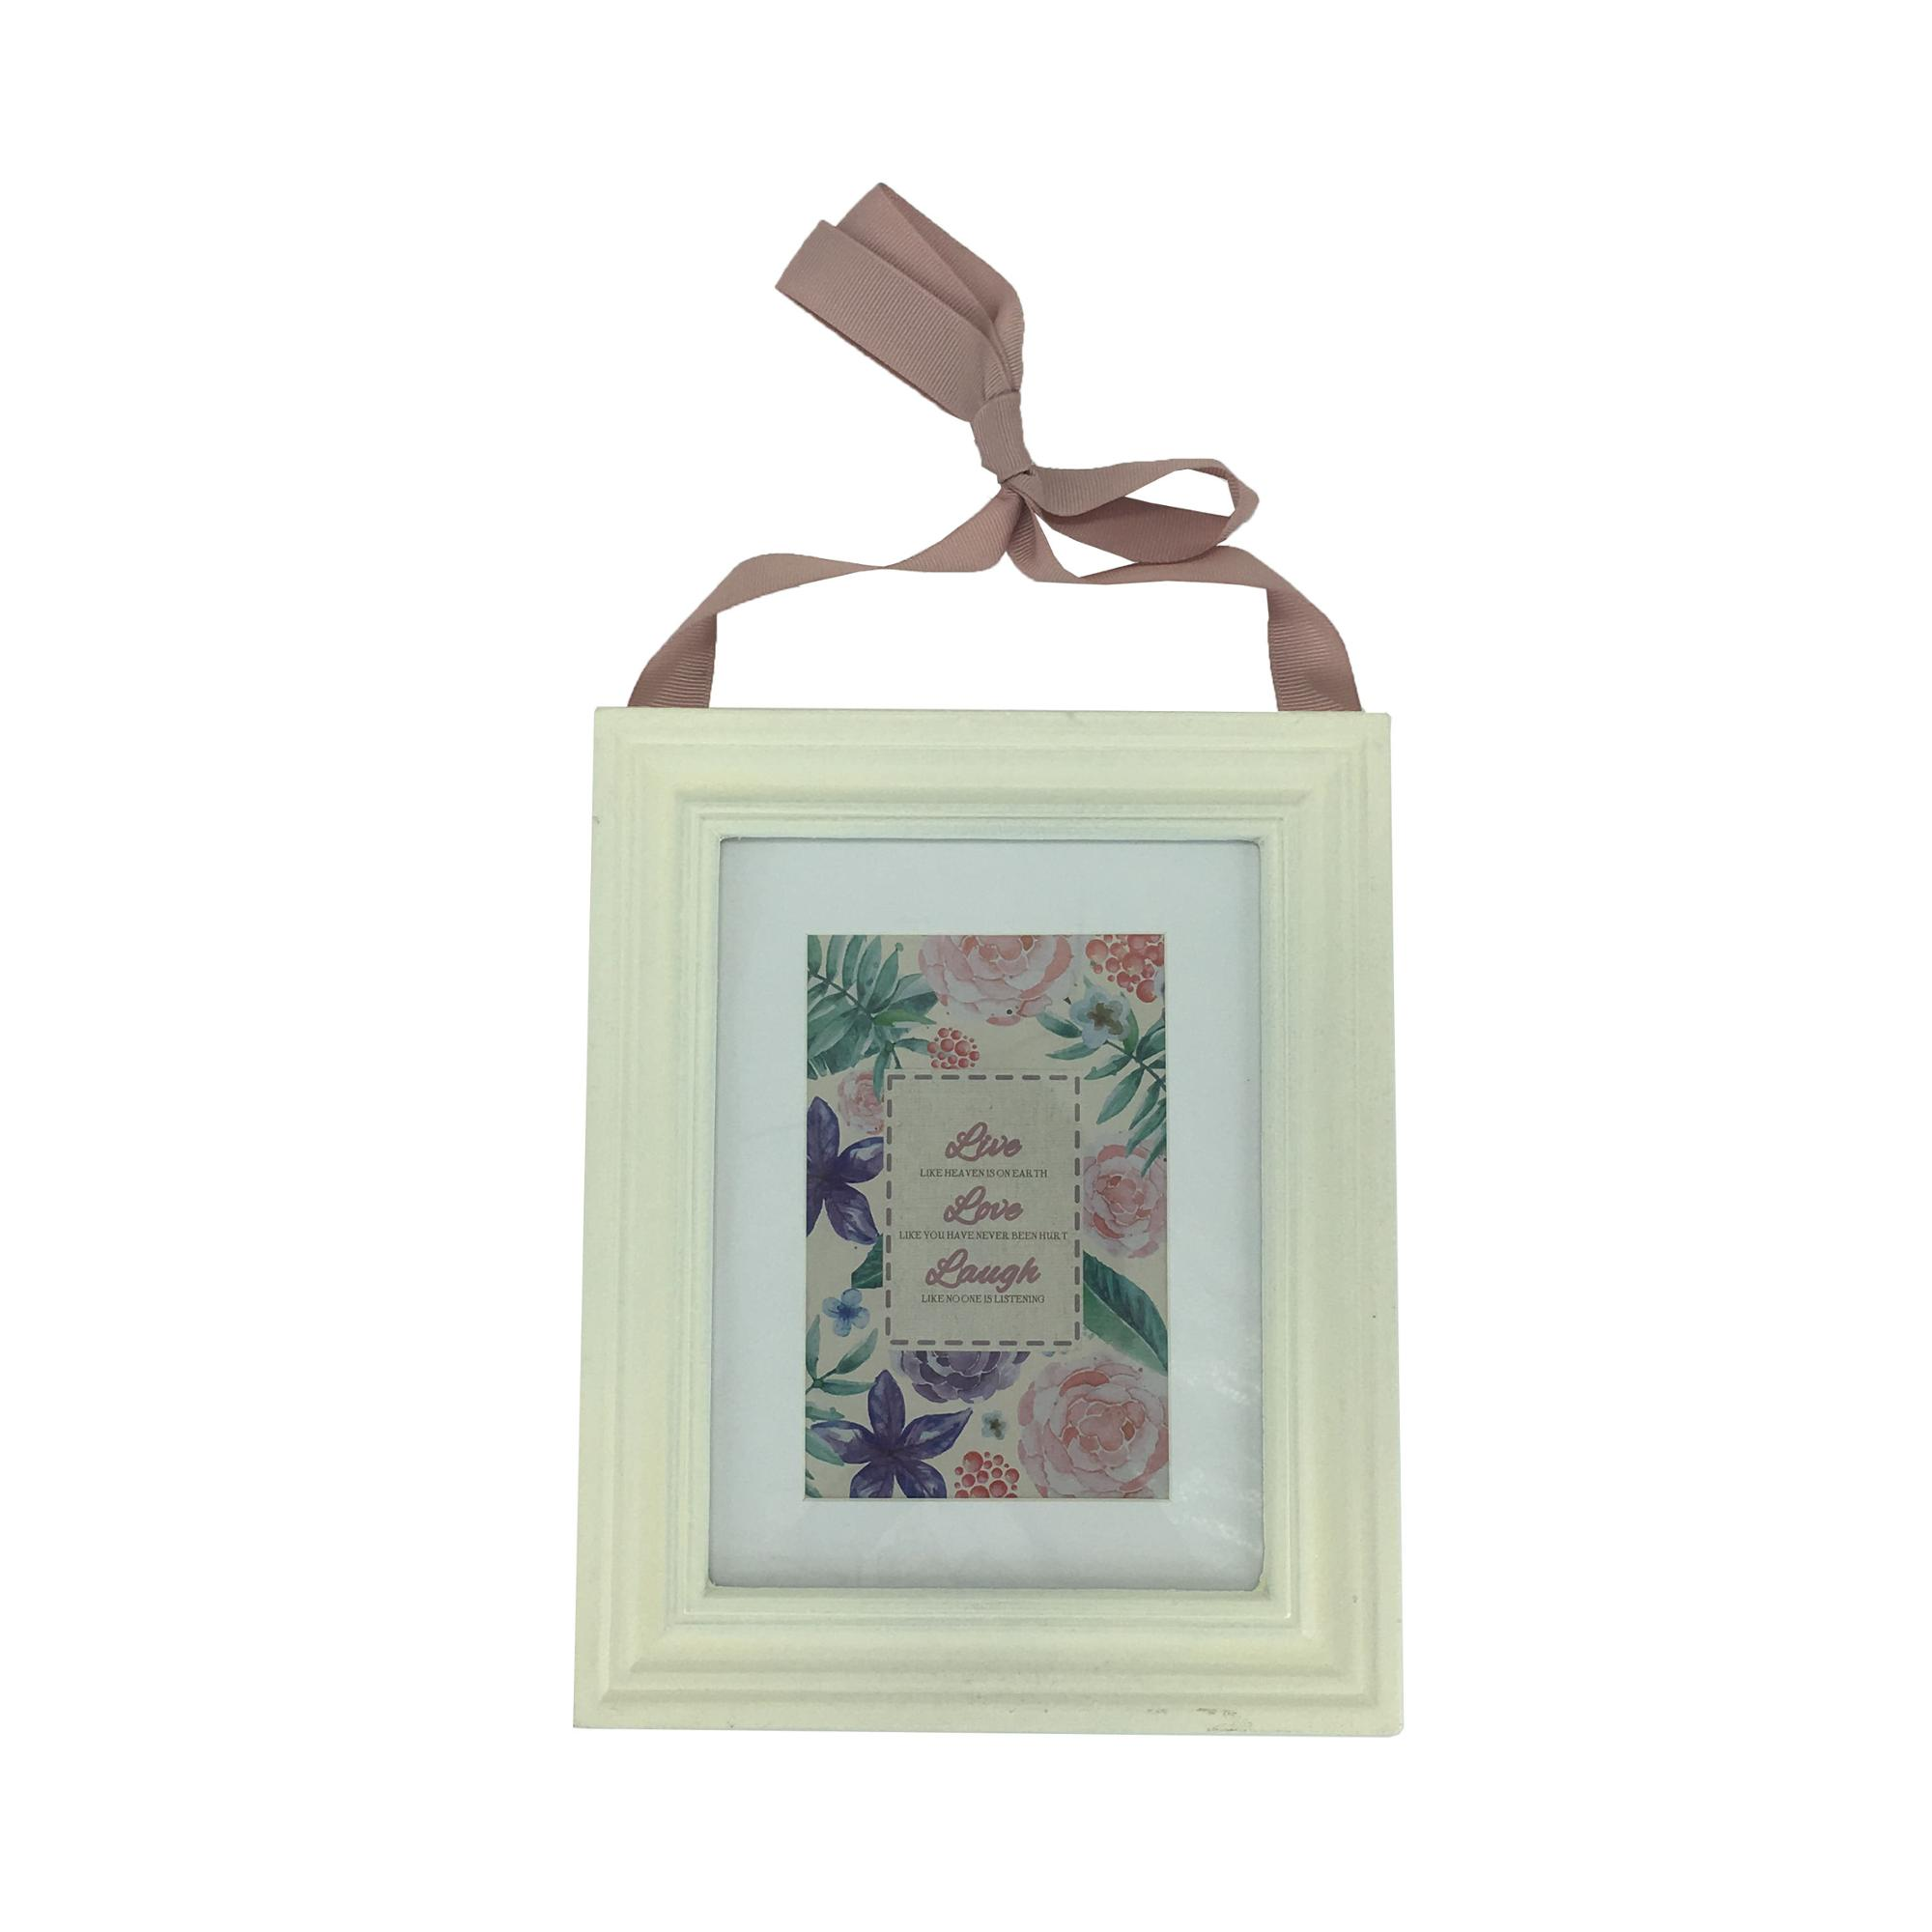 Decorative Wood MDF Hanging Picture Photo Frame